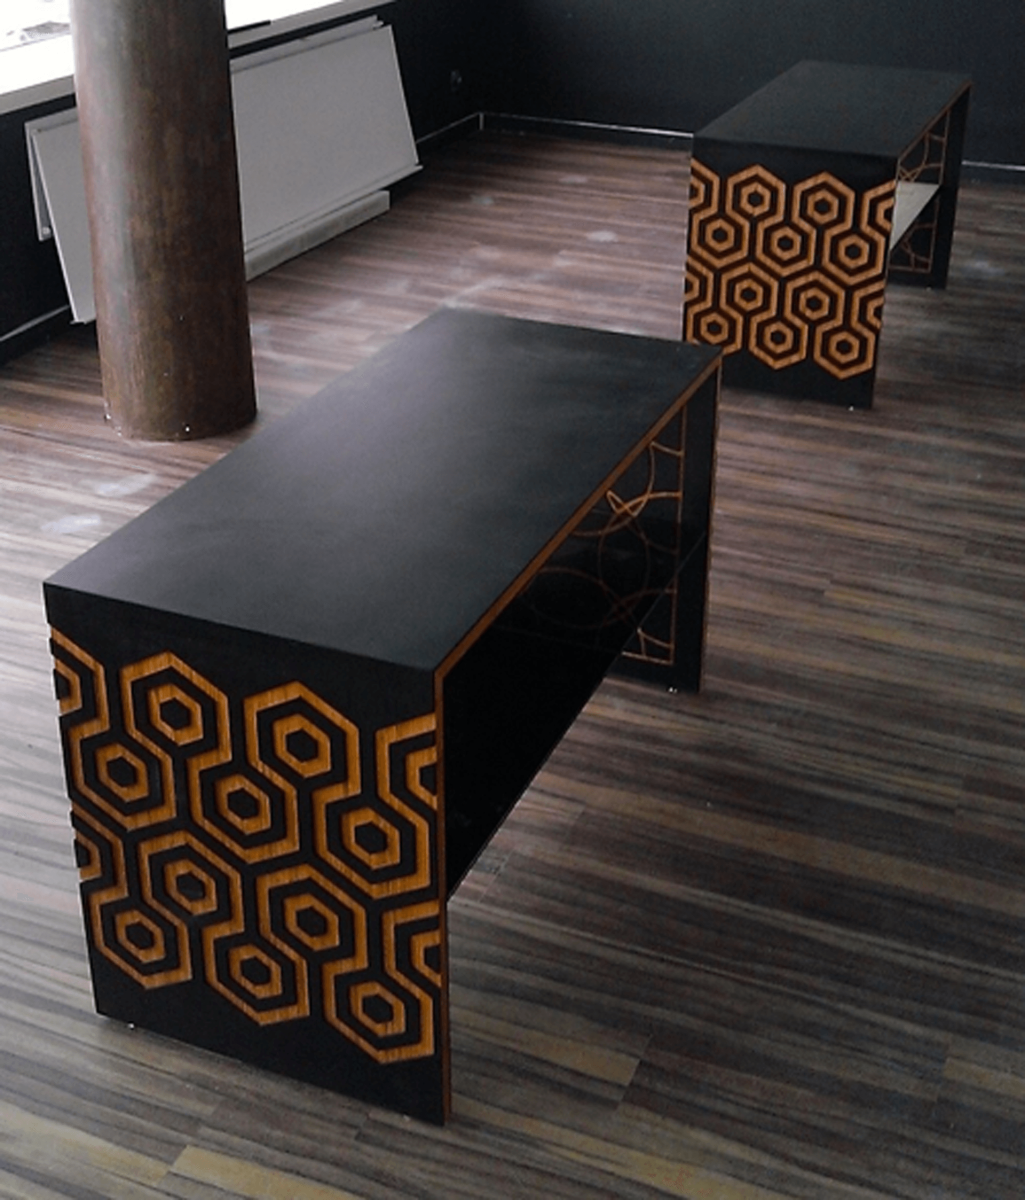 Richlite-Furniture-Stratum-CNC-Desk-Cirque-Distribution